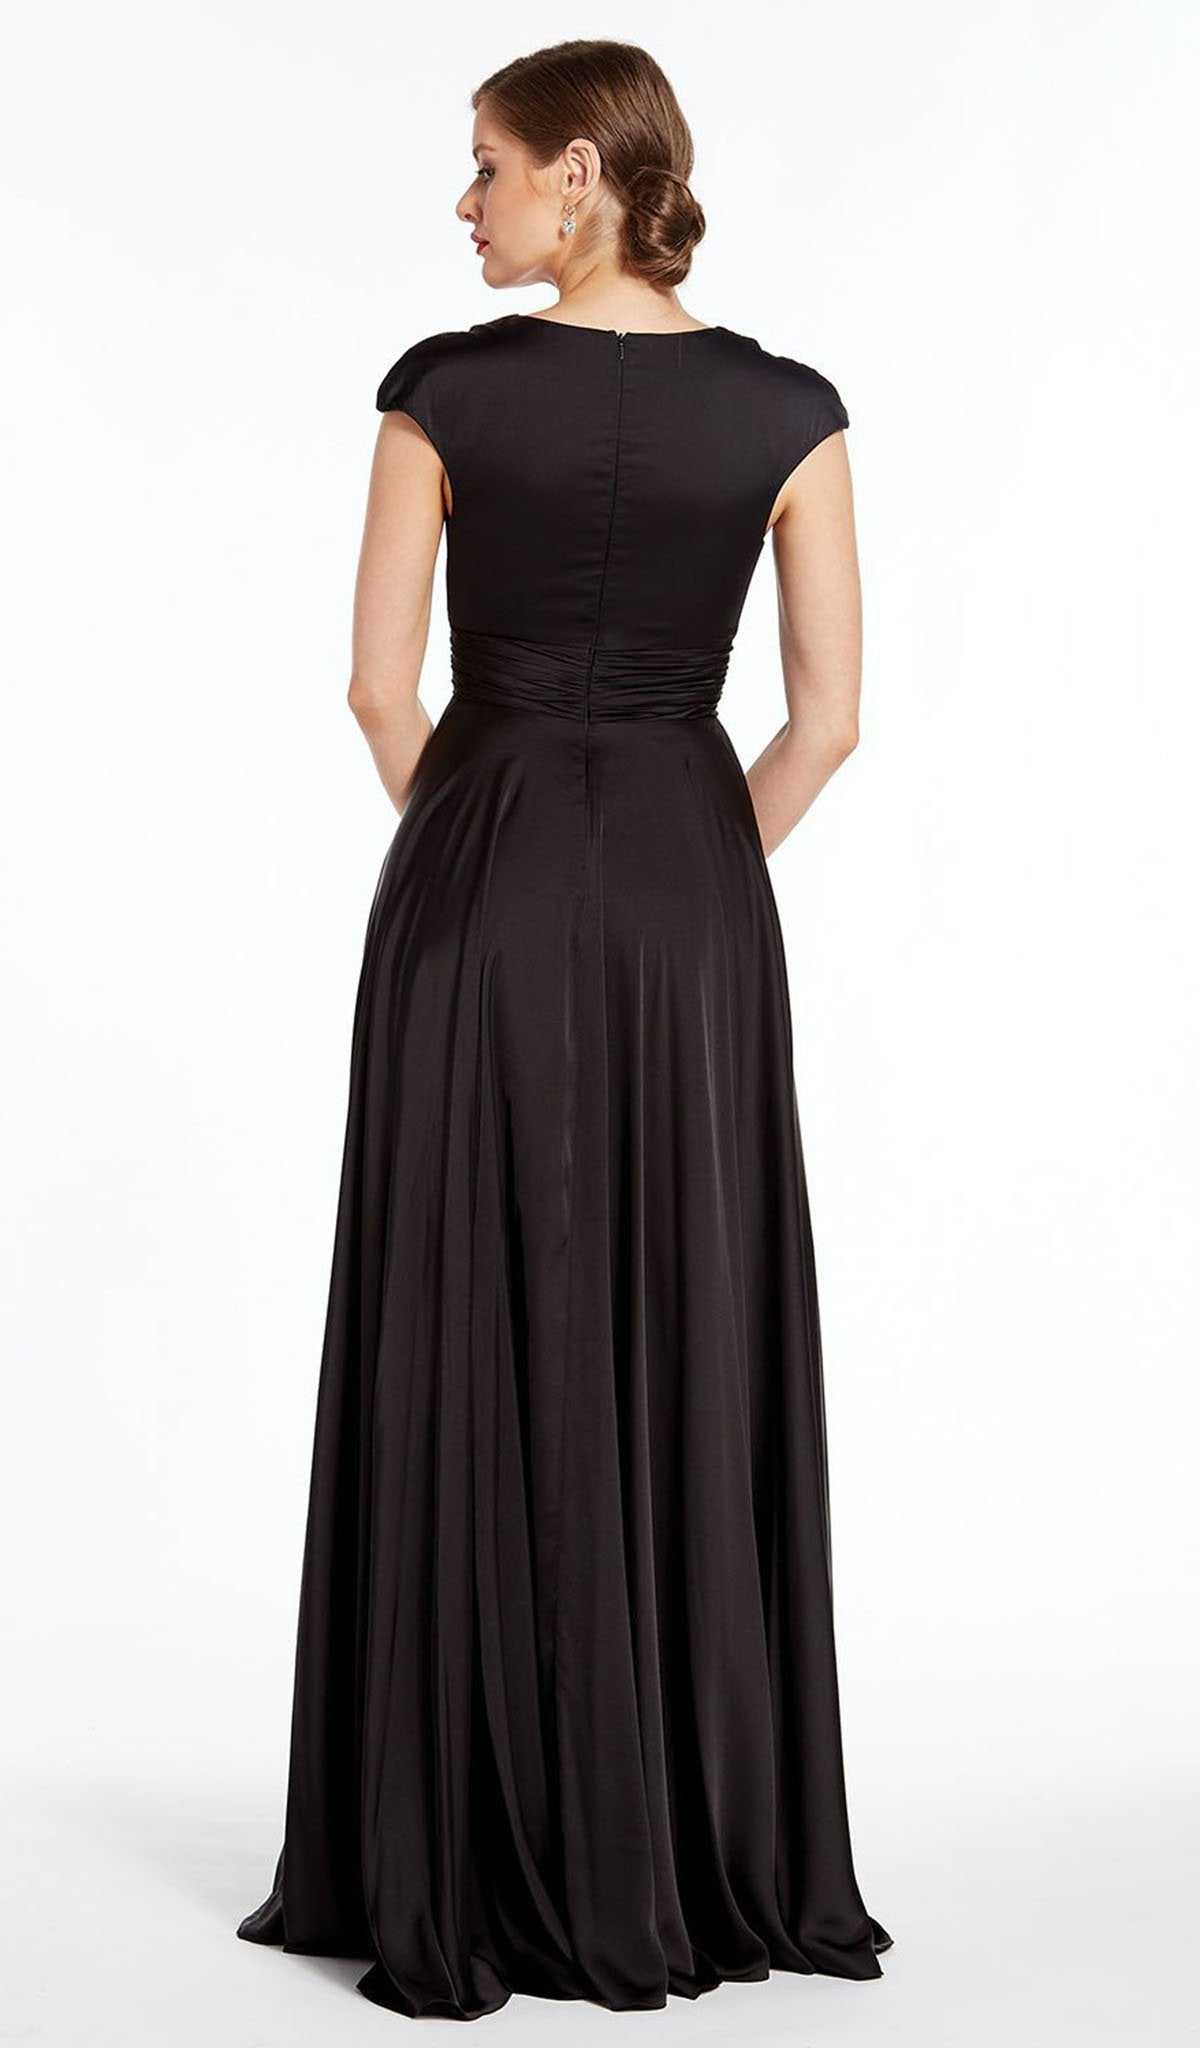 Alyce Paris - 27305 Satin Chiffon V Neck A-Line Dress In Black